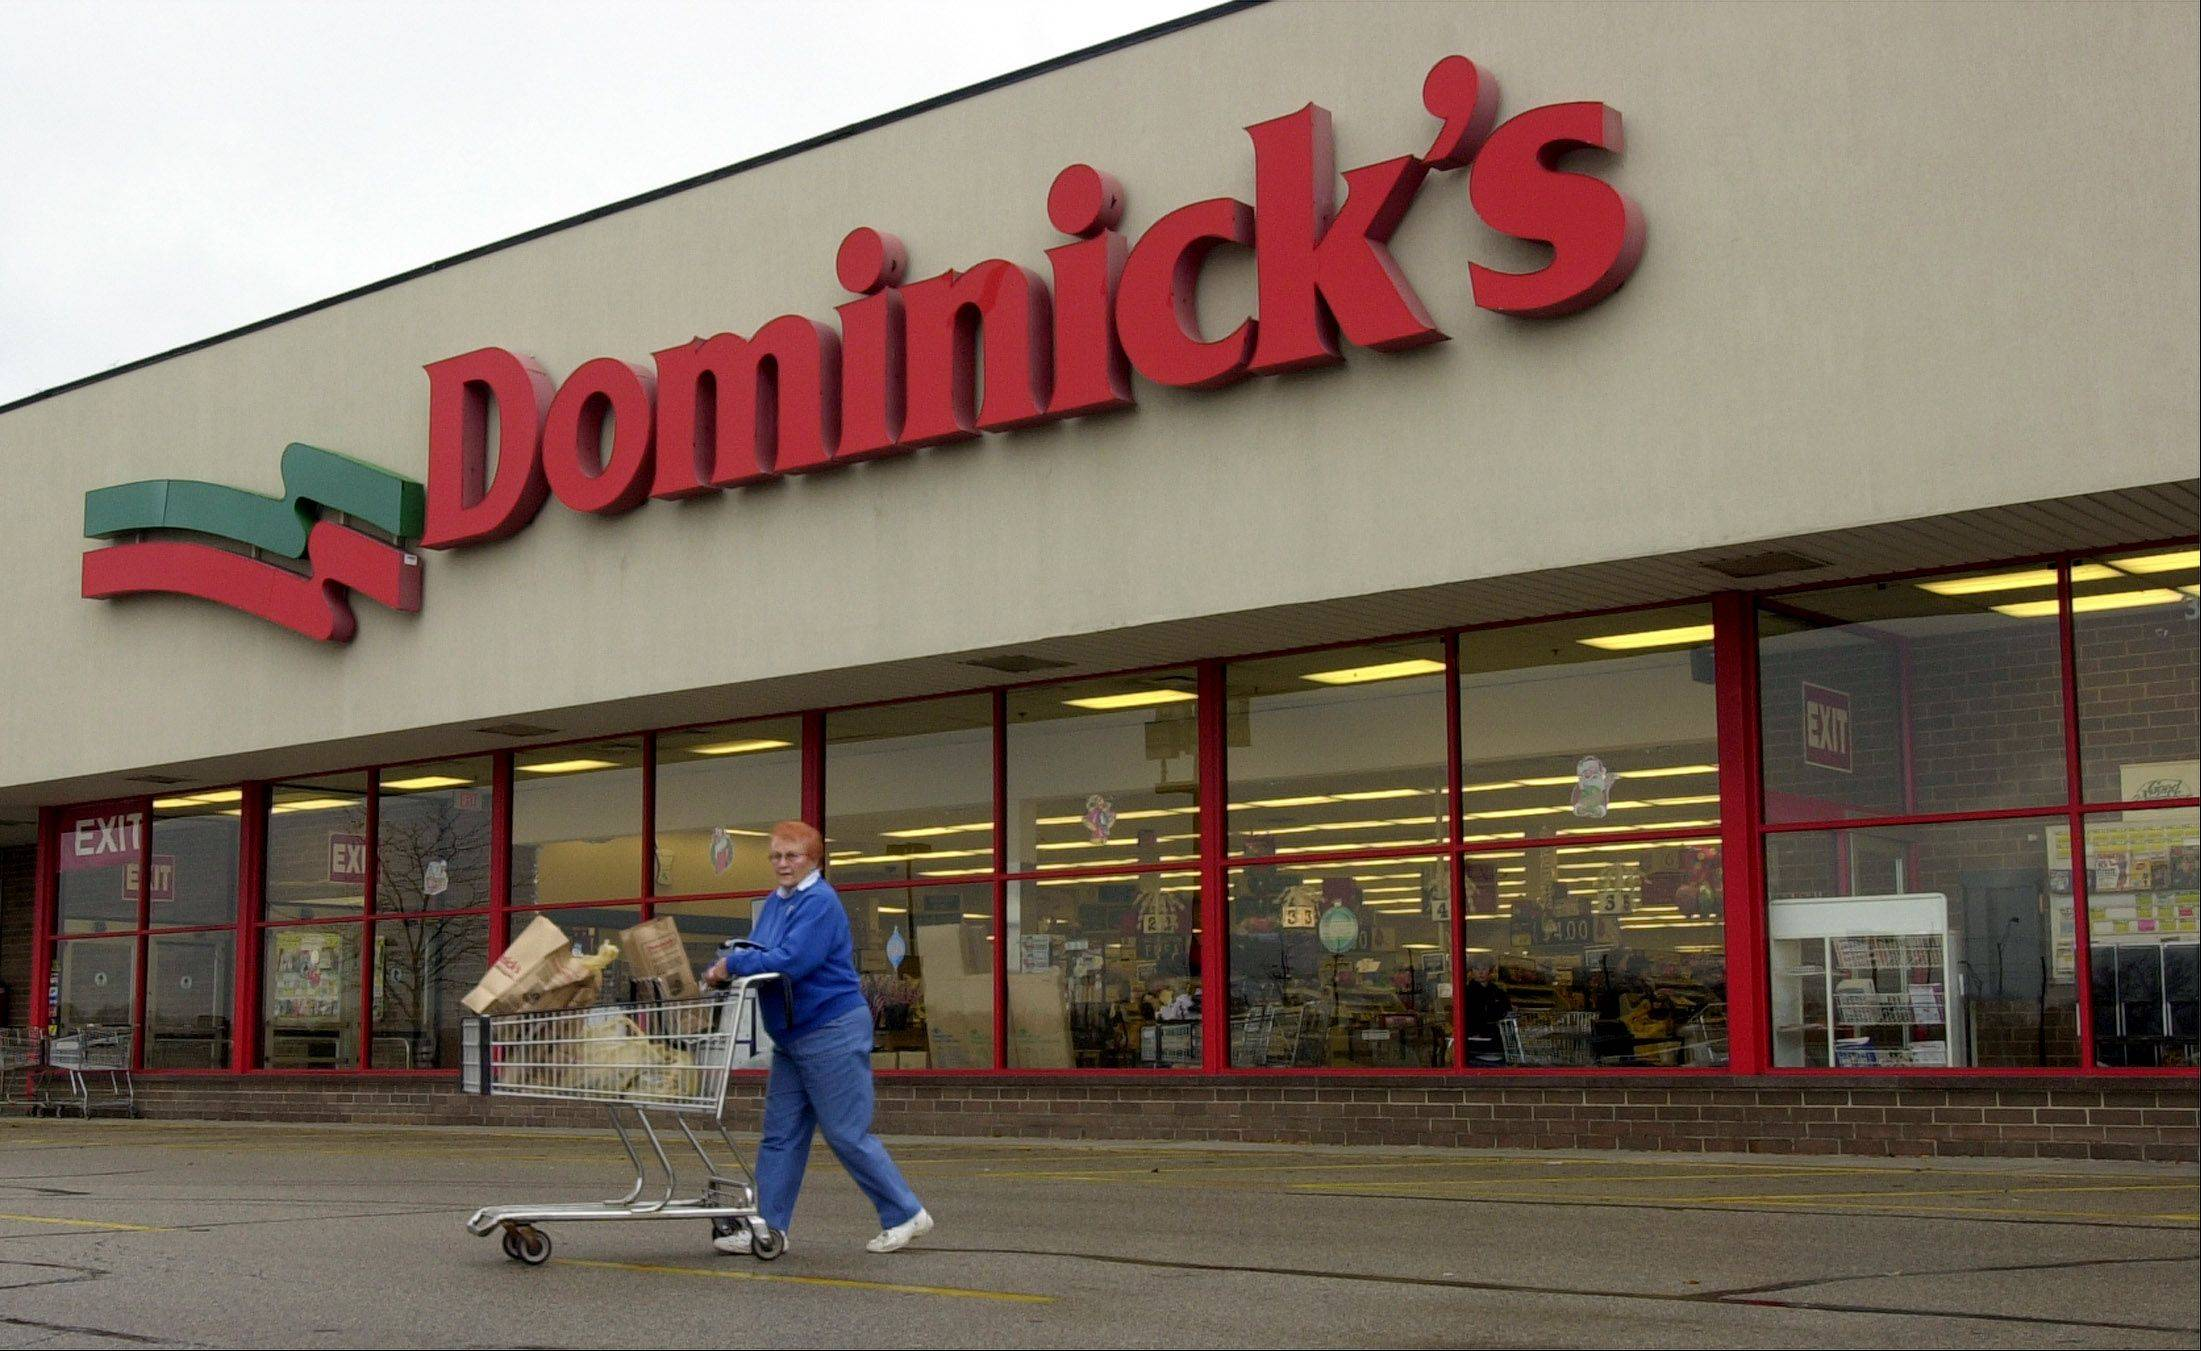 Mayor Rahm Emanuel has announced the members of a task force to assess the impact of the closure of dozens of Dominick's grocery stores.